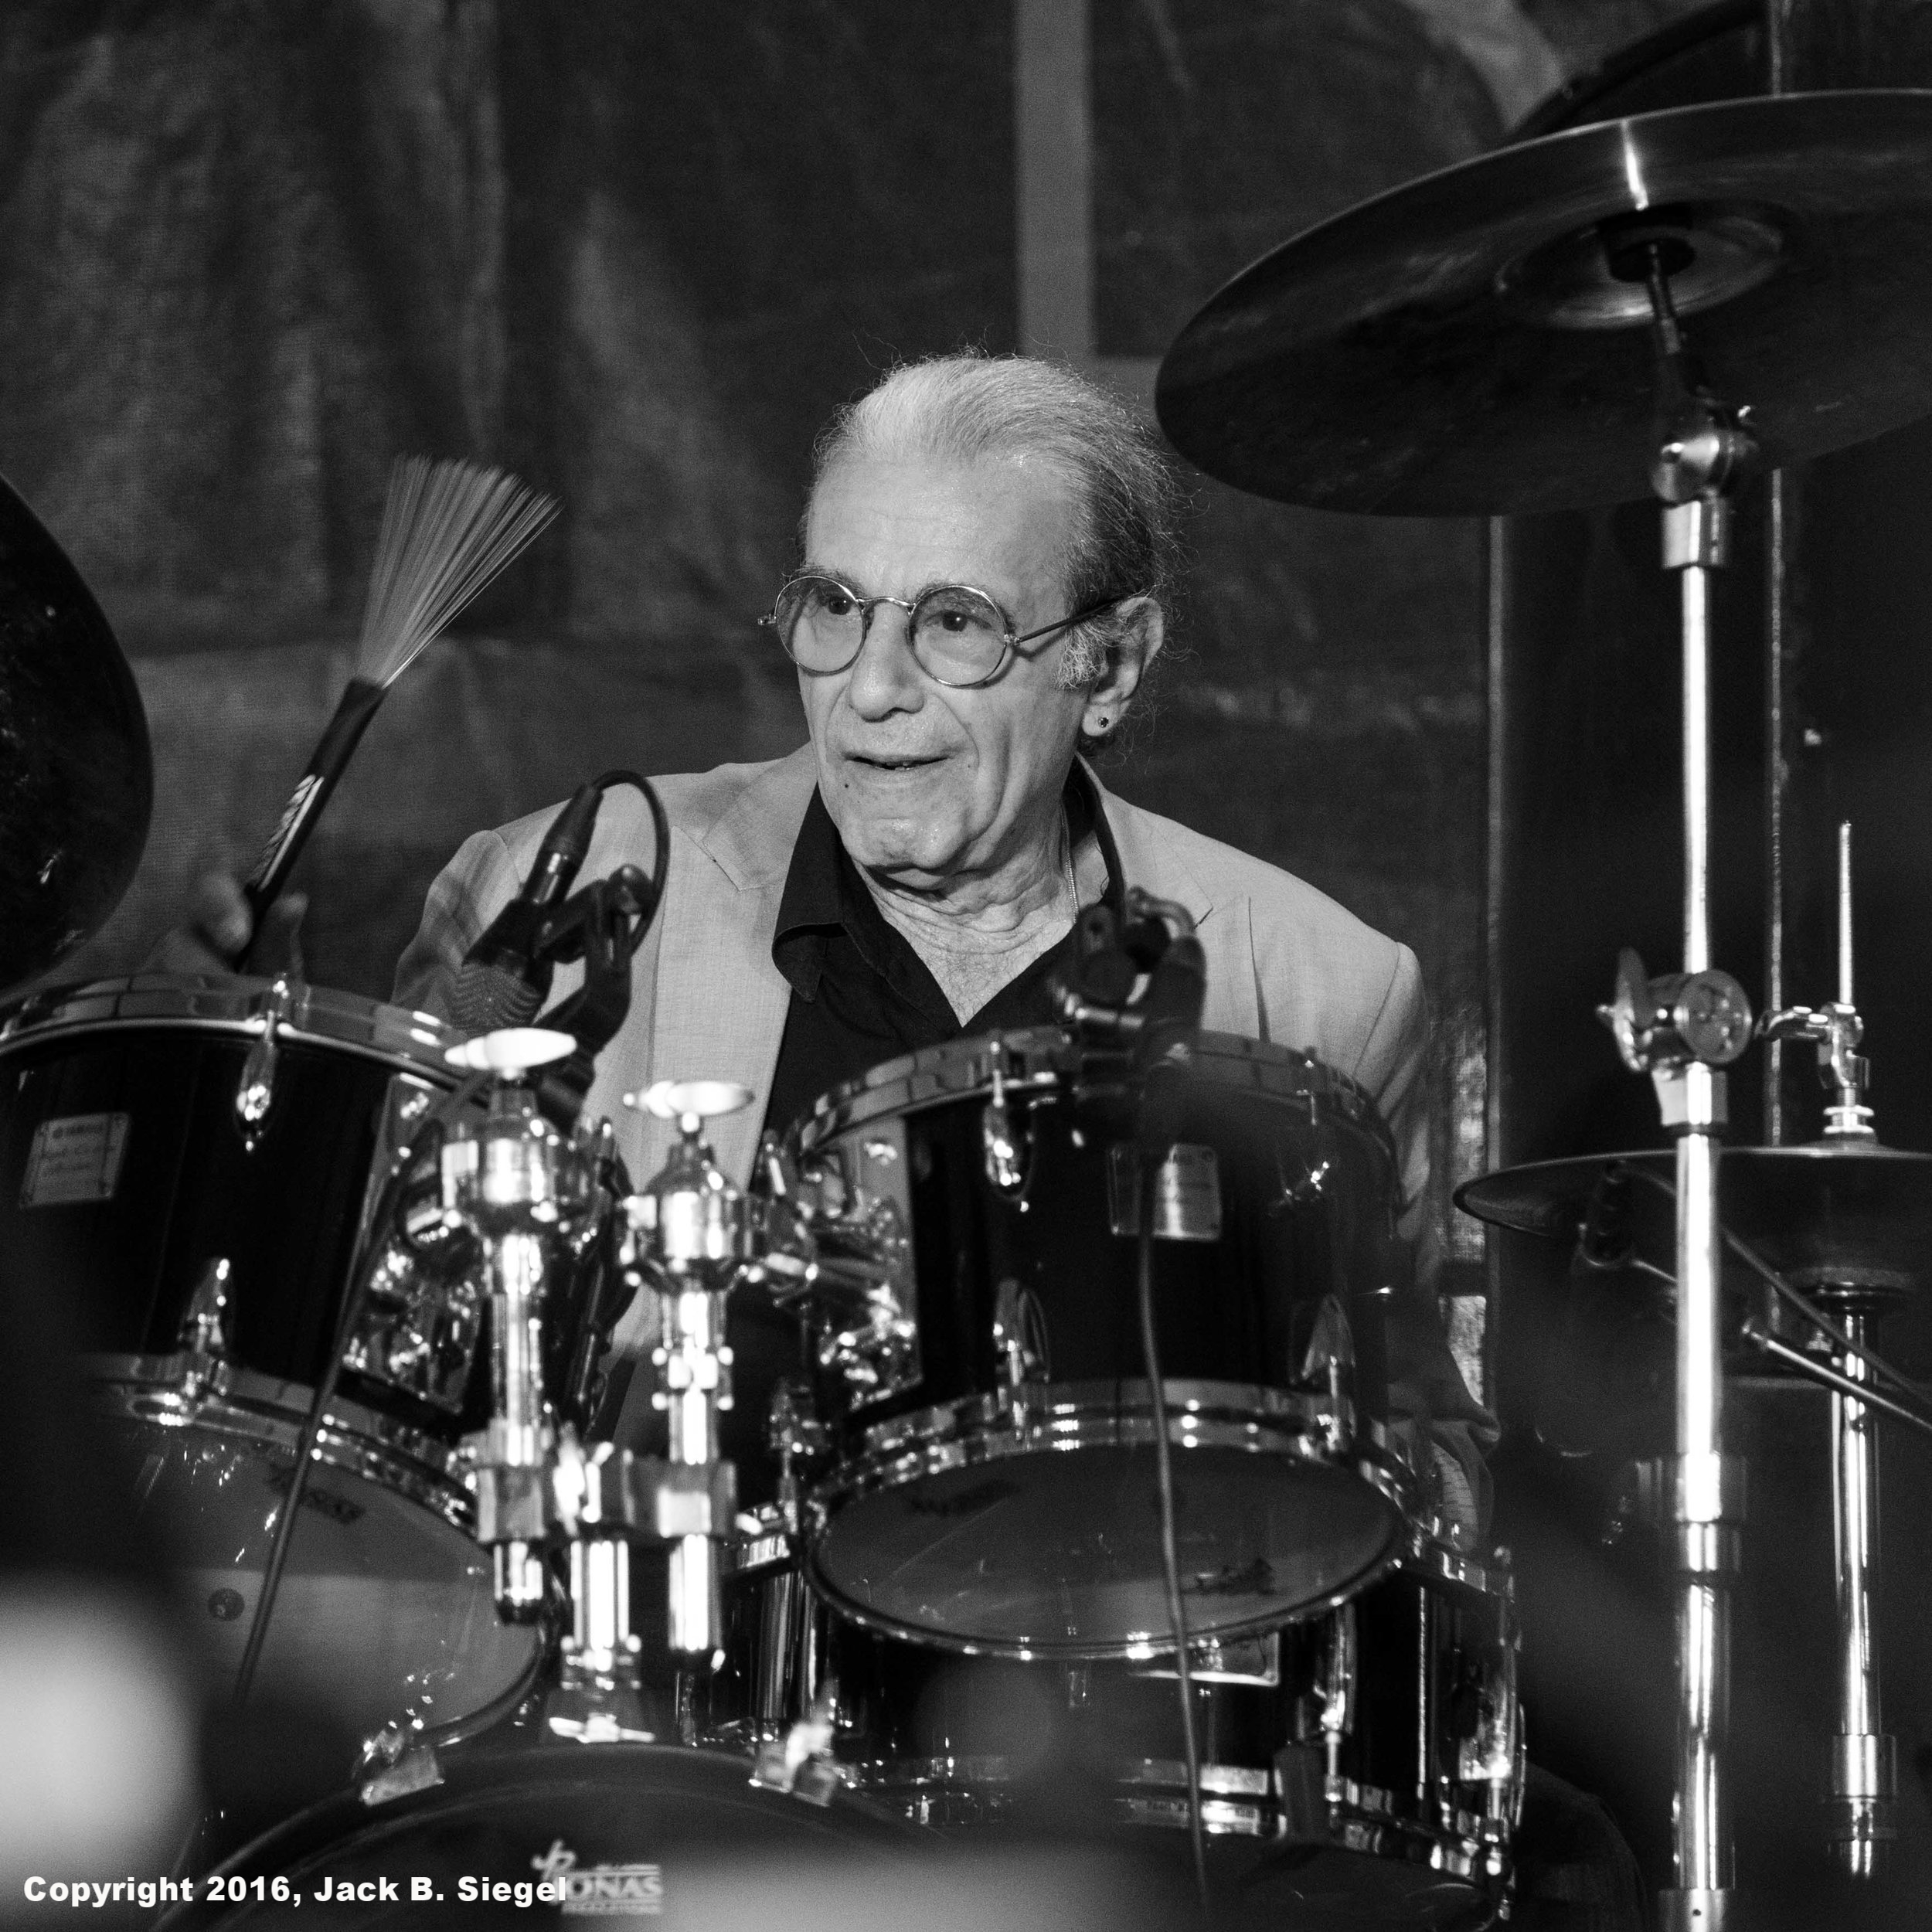 Legendary Drummer Barry Altschul in a Rare Performance